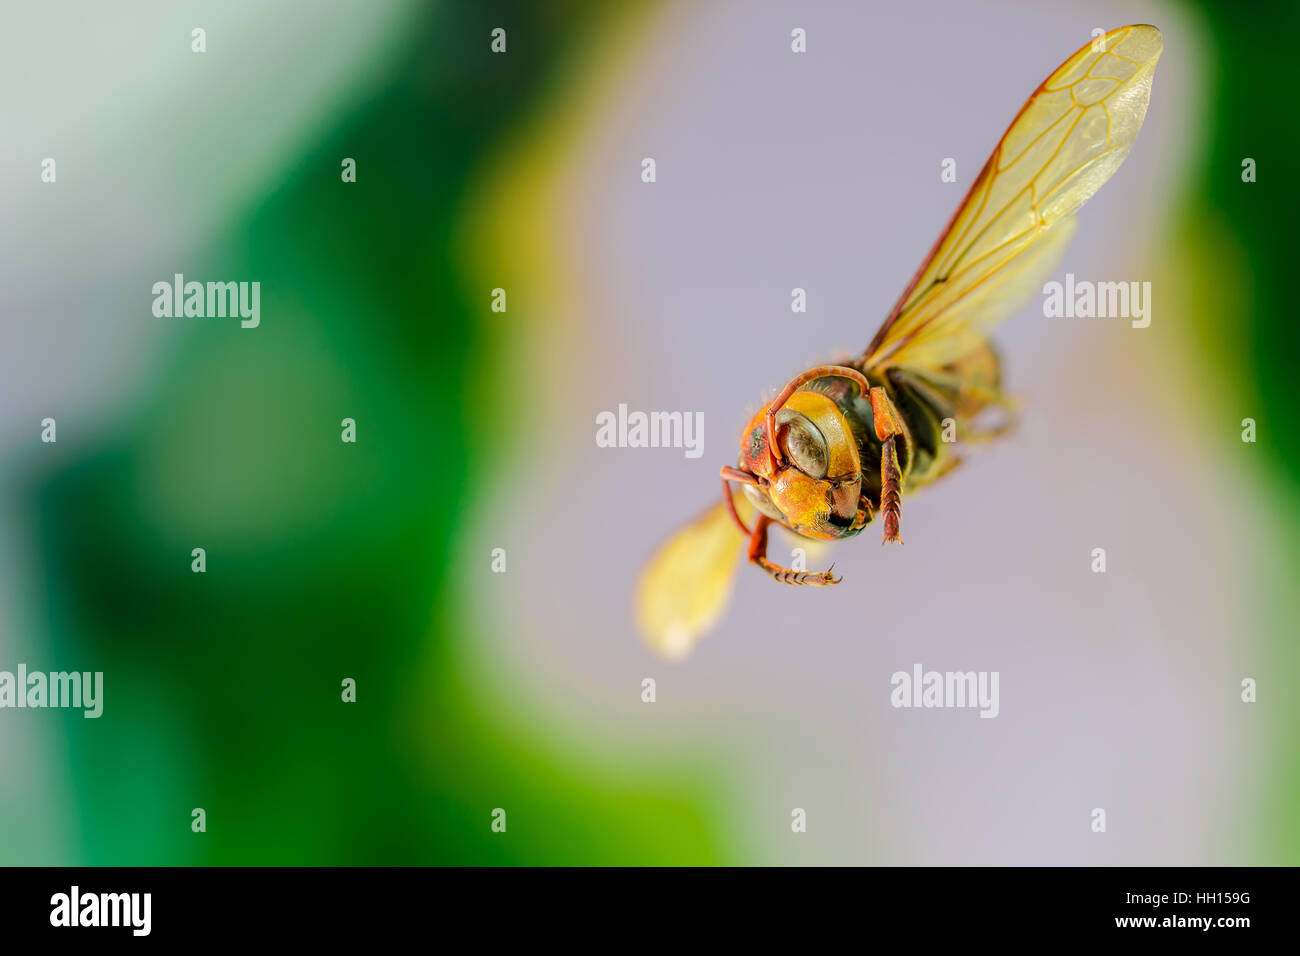 flying insect stockfotos flying insect bilder alamy. Black Bedroom Furniture Sets. Home Design Ideas